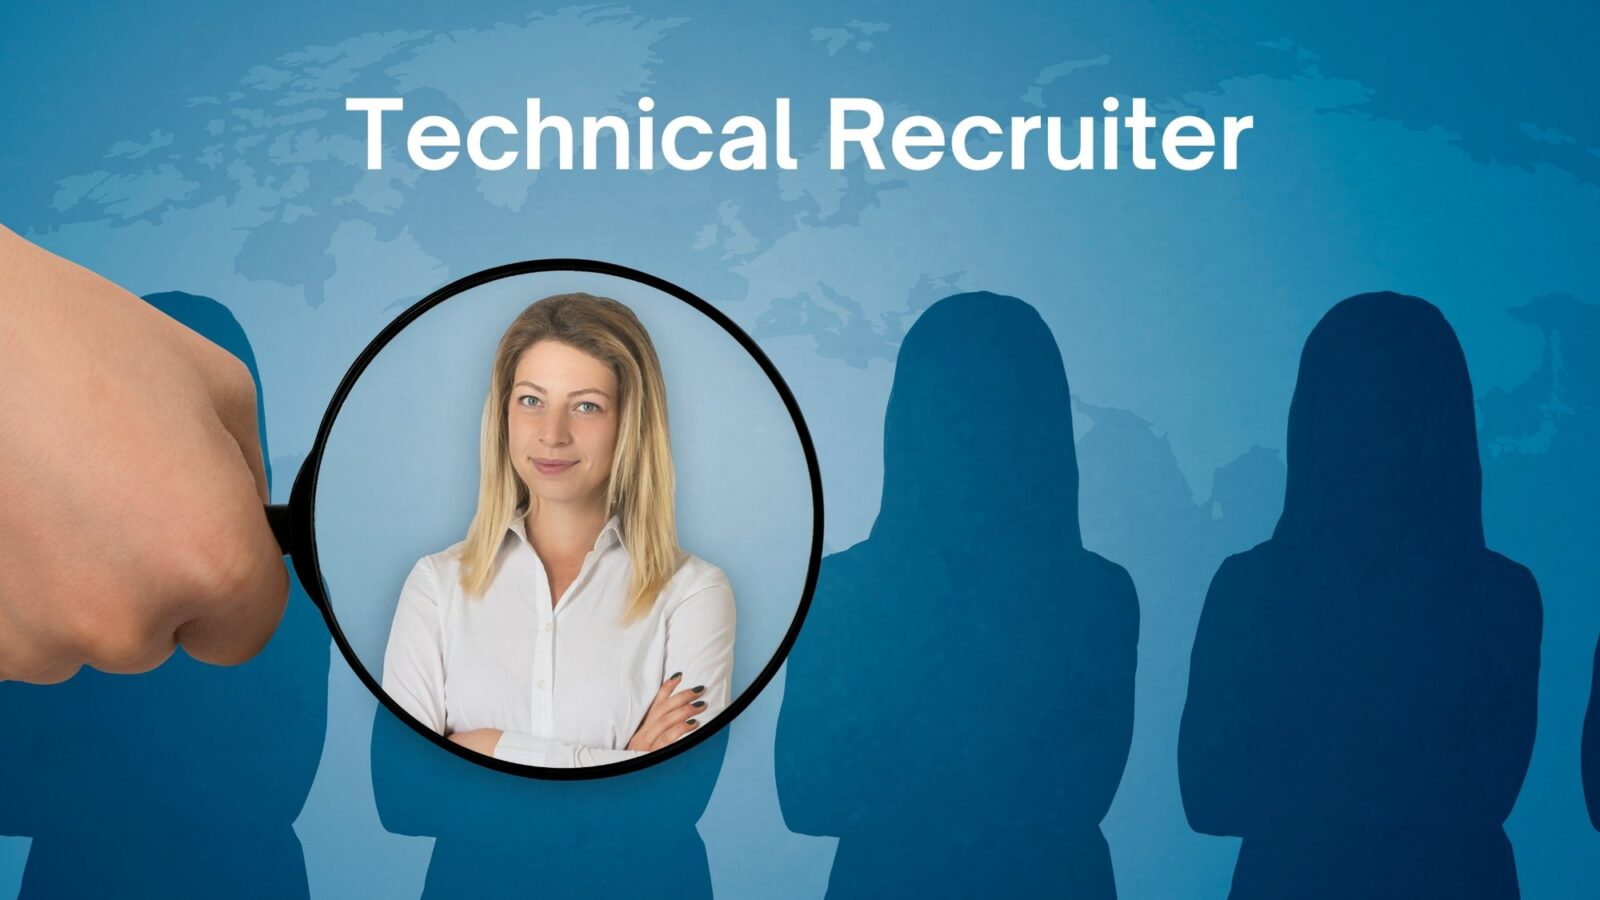 Technical recruiter